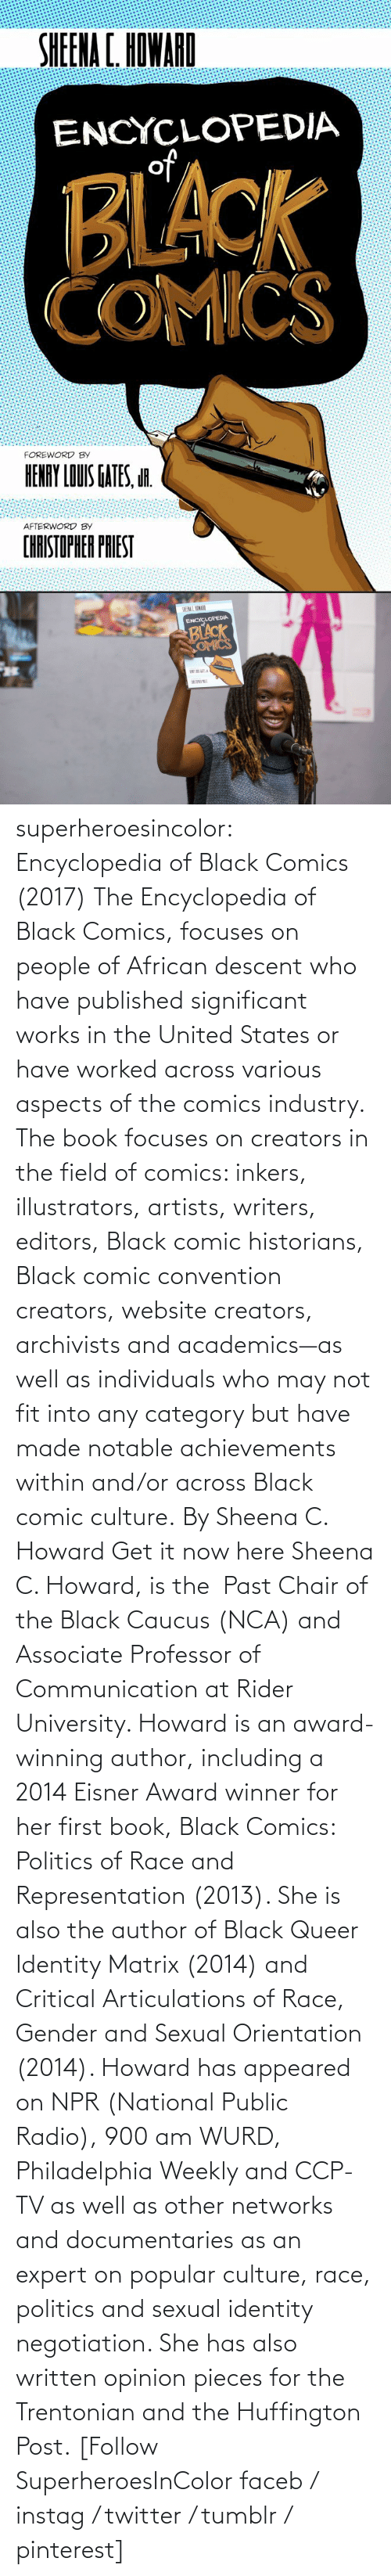 At: superheroesincolor: Encyclopedia of Black Comics (2017) The Encyclopedia of Black Comics, focuses on people of African descent who have published significant works in the United States or have worked across various aspects of the comics industry.  The book focuses on creators in the field of comics: inkers, illustrators, artists, writers, editors, Black comic historians, Black comic convention creators, website creators, archivists and academics—as well as individuals who may not fit into any category but have made notable achievements within and/or across Black comic culture. By Sheena C. Howard Get it now here  Sheena C. Howard, is the  Past Chair of the Black Caucus (NCA) and Associate Professor of Communication at Rider University. Howard is an award-winning author, including a 2014 Eisner Award winner for her first book, Black Comics: Politics of Race and Representation (2013). She is also the author of Black Queer Identity Matrix (2014) and Critical Articulations of Race, Gender and Sexual Orientation (2014). Howard has appeared on NPR (National Public Radio), 900 am WURD, Philadelphia Weekly and CCP-TV as well as other networks and documentaries as an expert on popular culture, race, politics and sexual identity negotiation. She has also written opinion pieces for the Trentonian and the Huffington Post.   [Follow SuperheroesInColor faceb / instag / twitter / tumblr / pinterest]